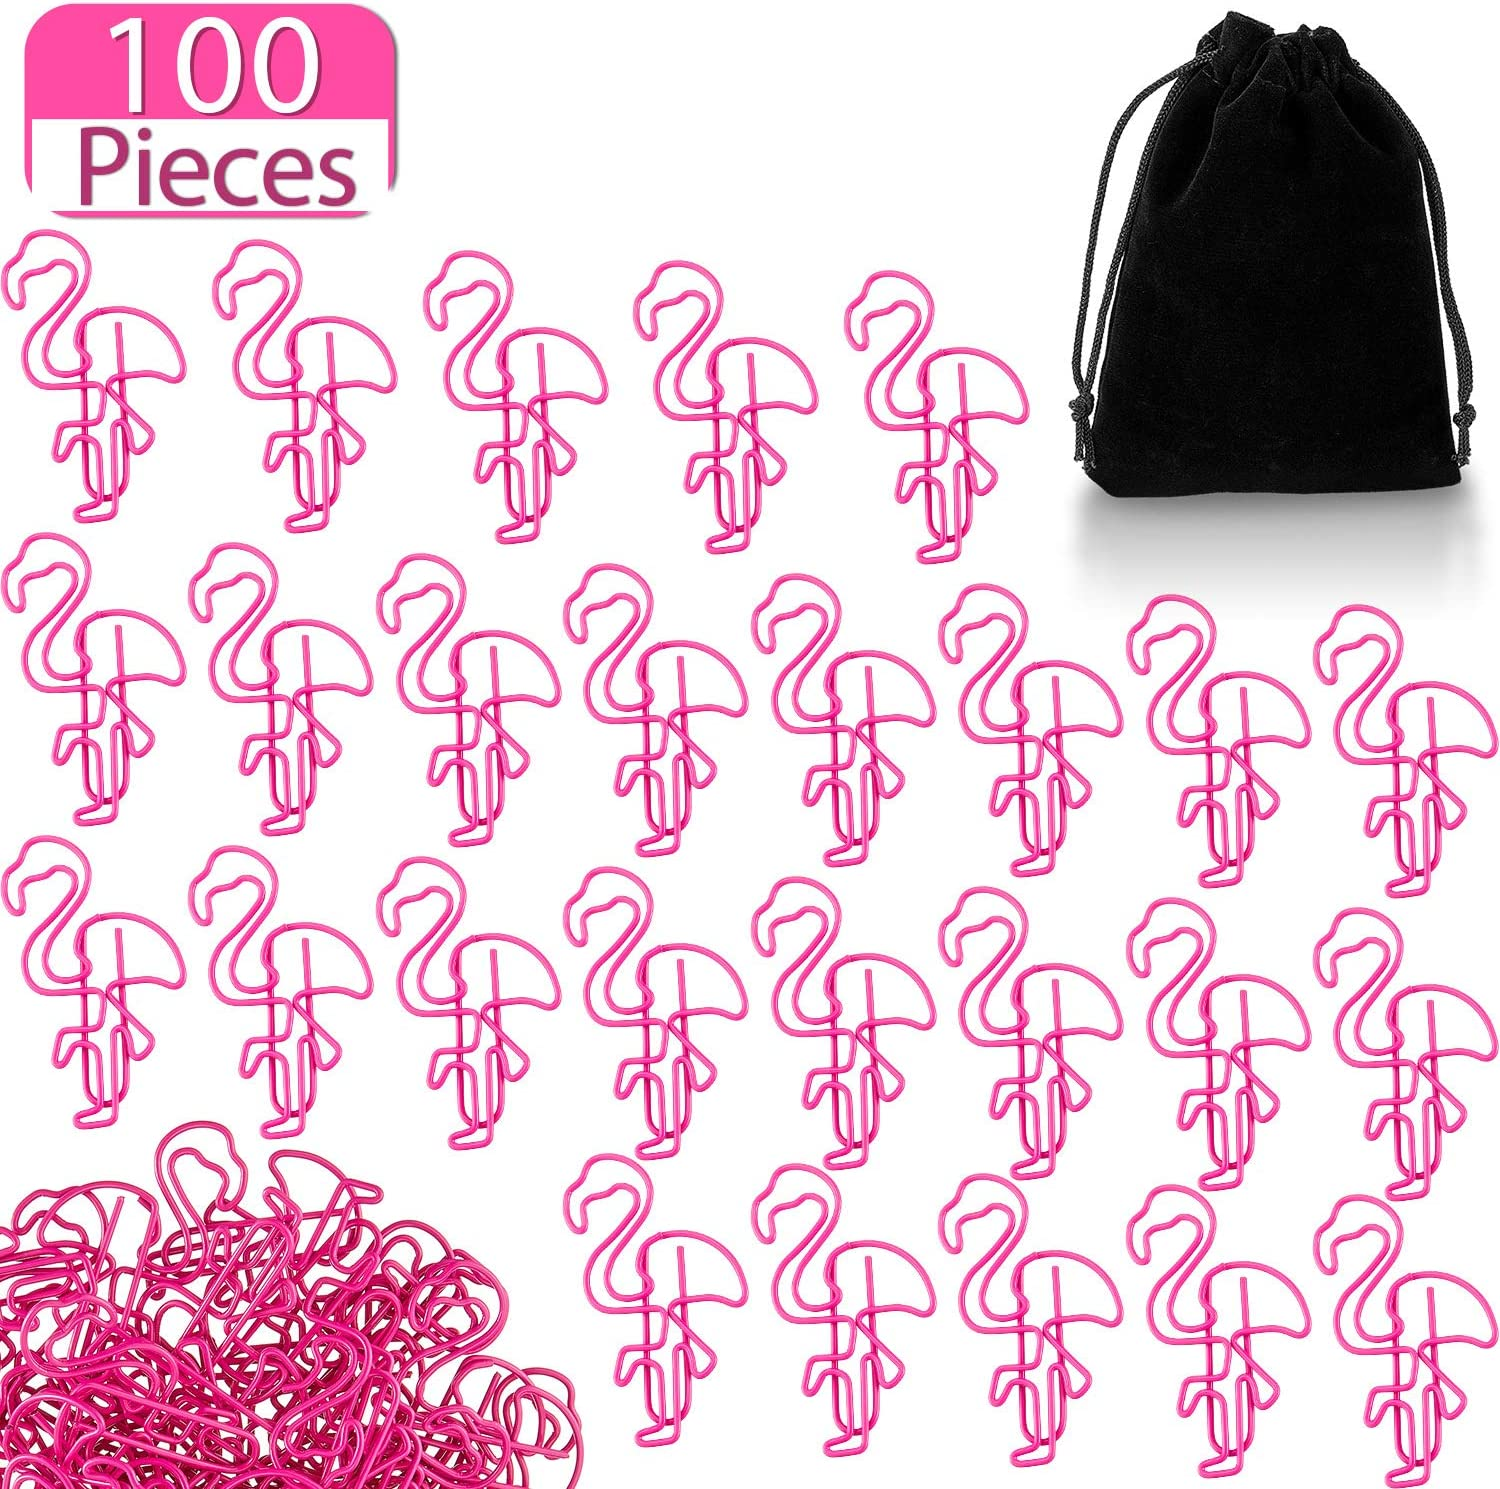 100 Pieces Flamingo Paper Clip Flamingo Shaped Paperclips Cute Animal Shape Bookmark Clips Metal File Note Clips Page Marker for Office School Home Supplies